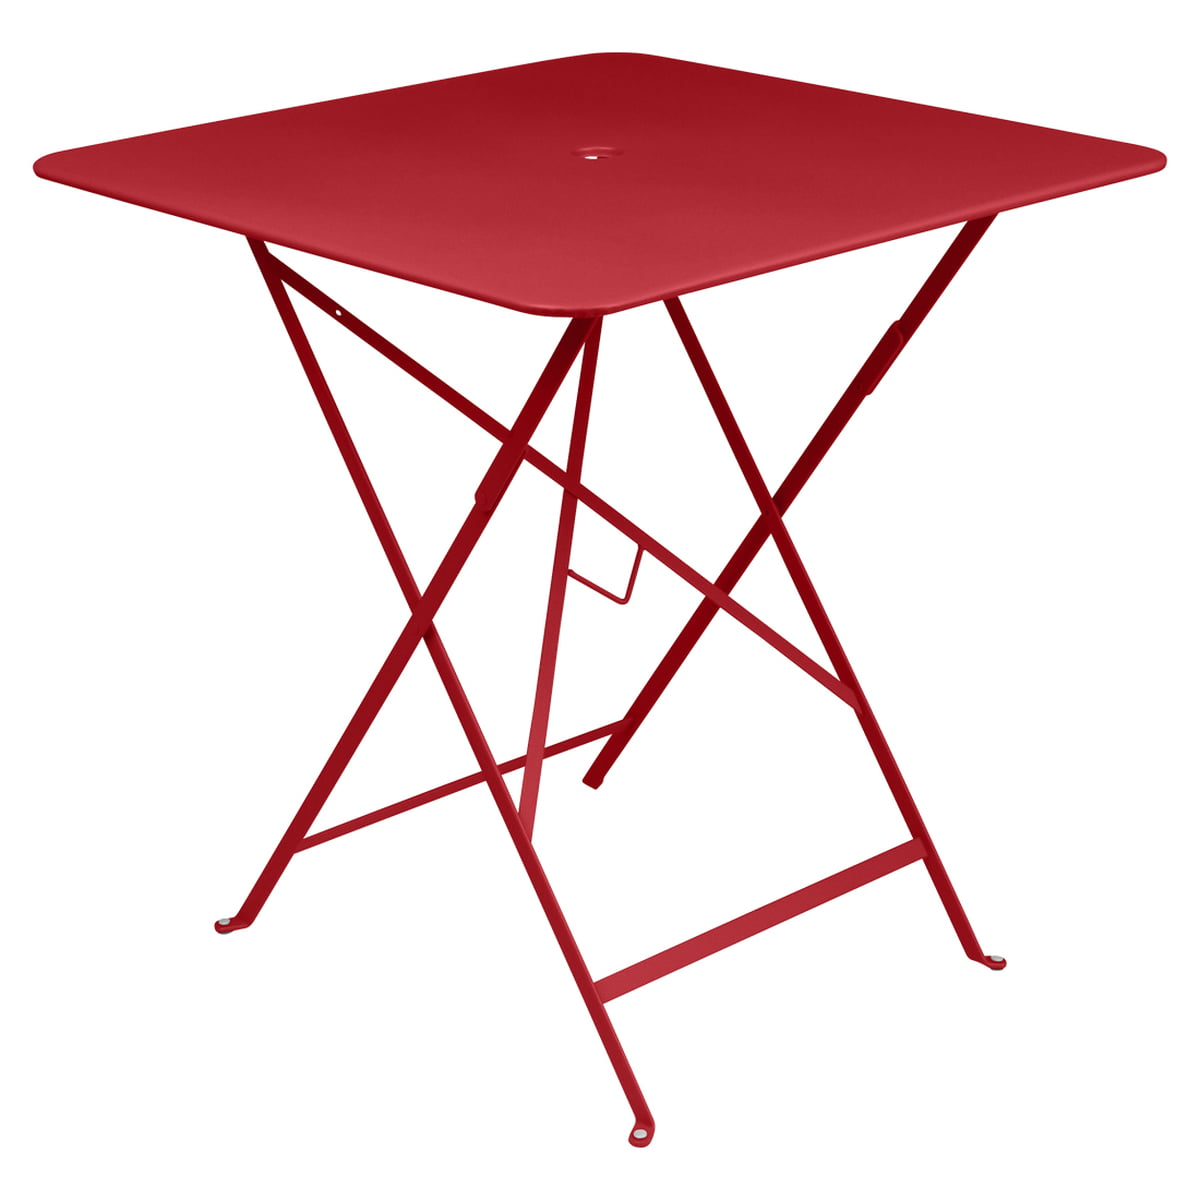 Bistro Folding Table 71 X 71 Cm By Fermob Connox # Table Pliante Style Brasserie